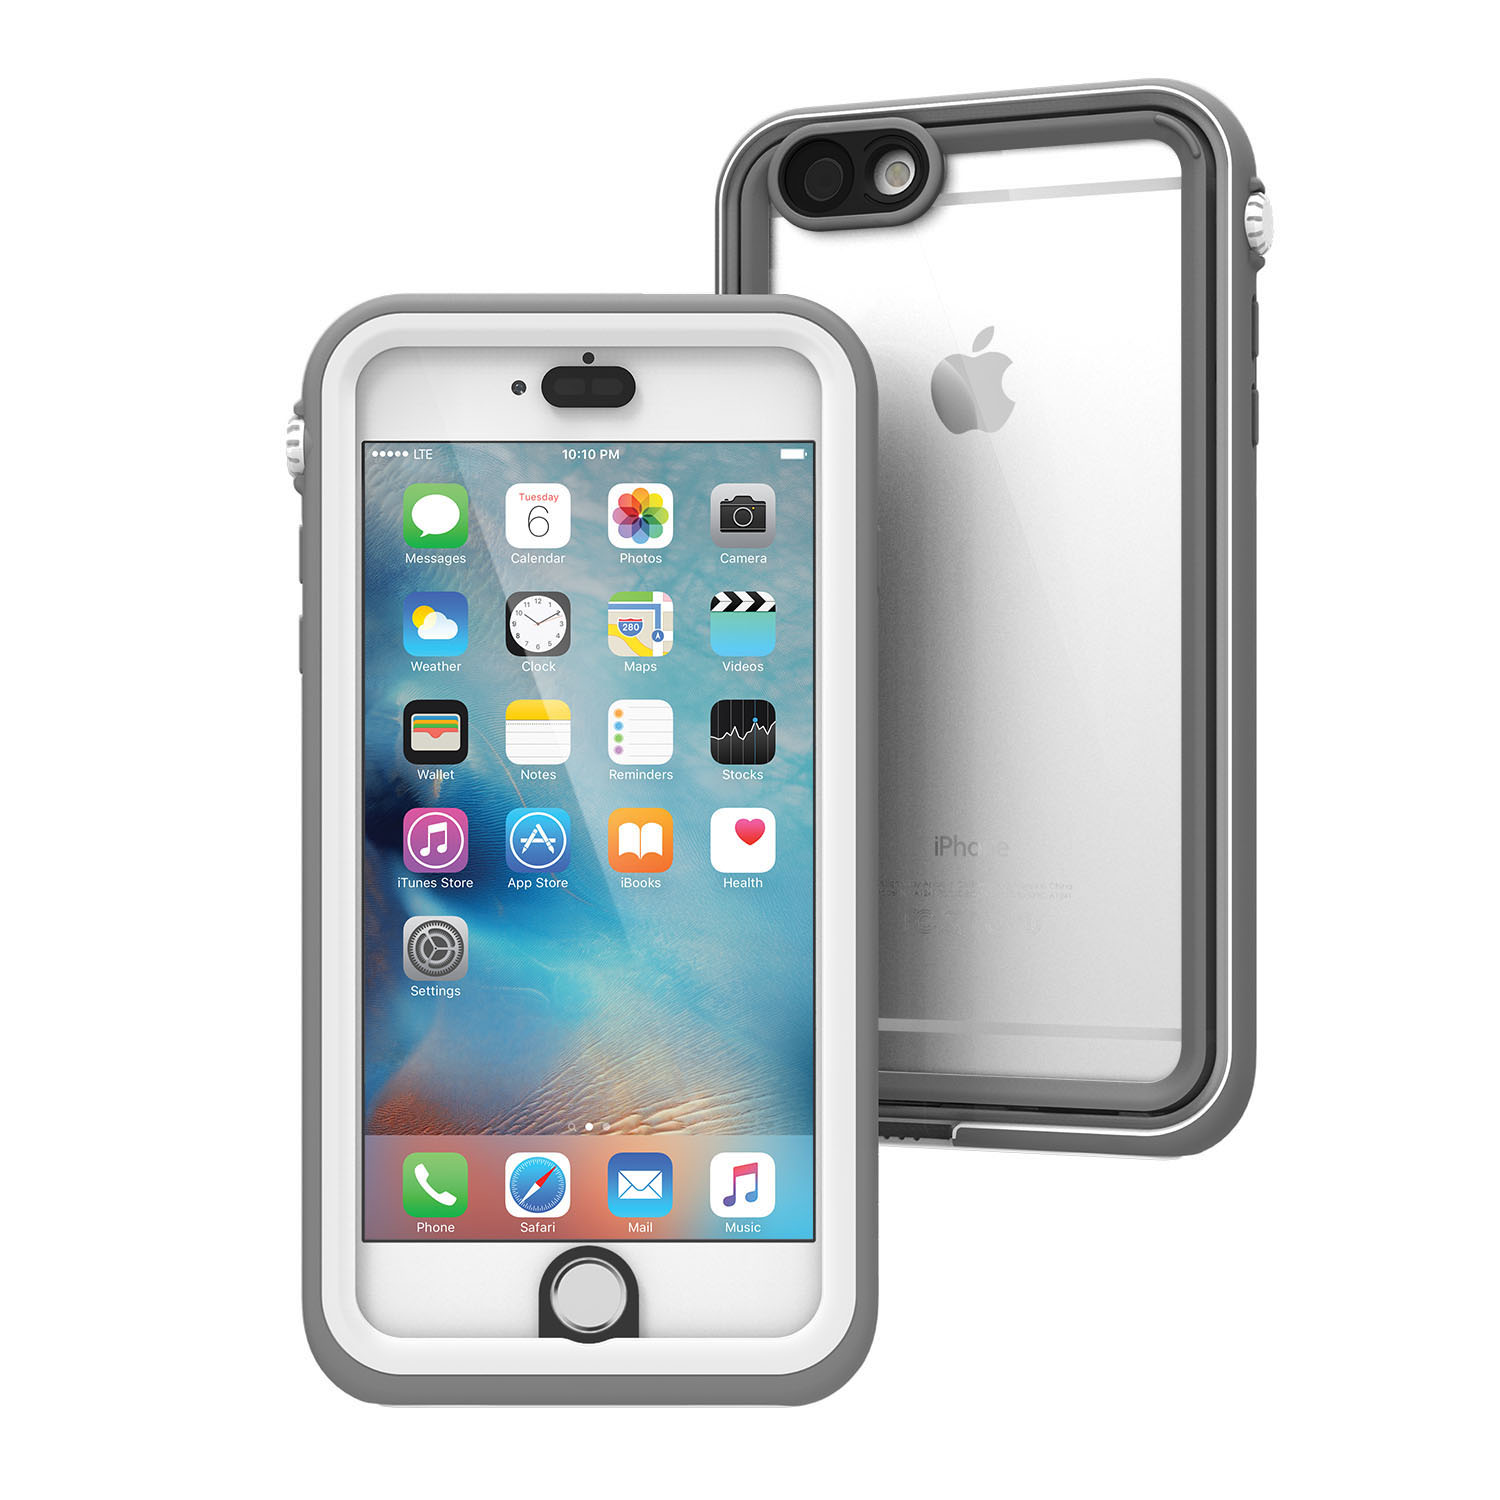 Voděodolné pouzdro / kryt pro Apple iPhone 6 Plus / 6S Plus - Catalyst Waterproof case, White